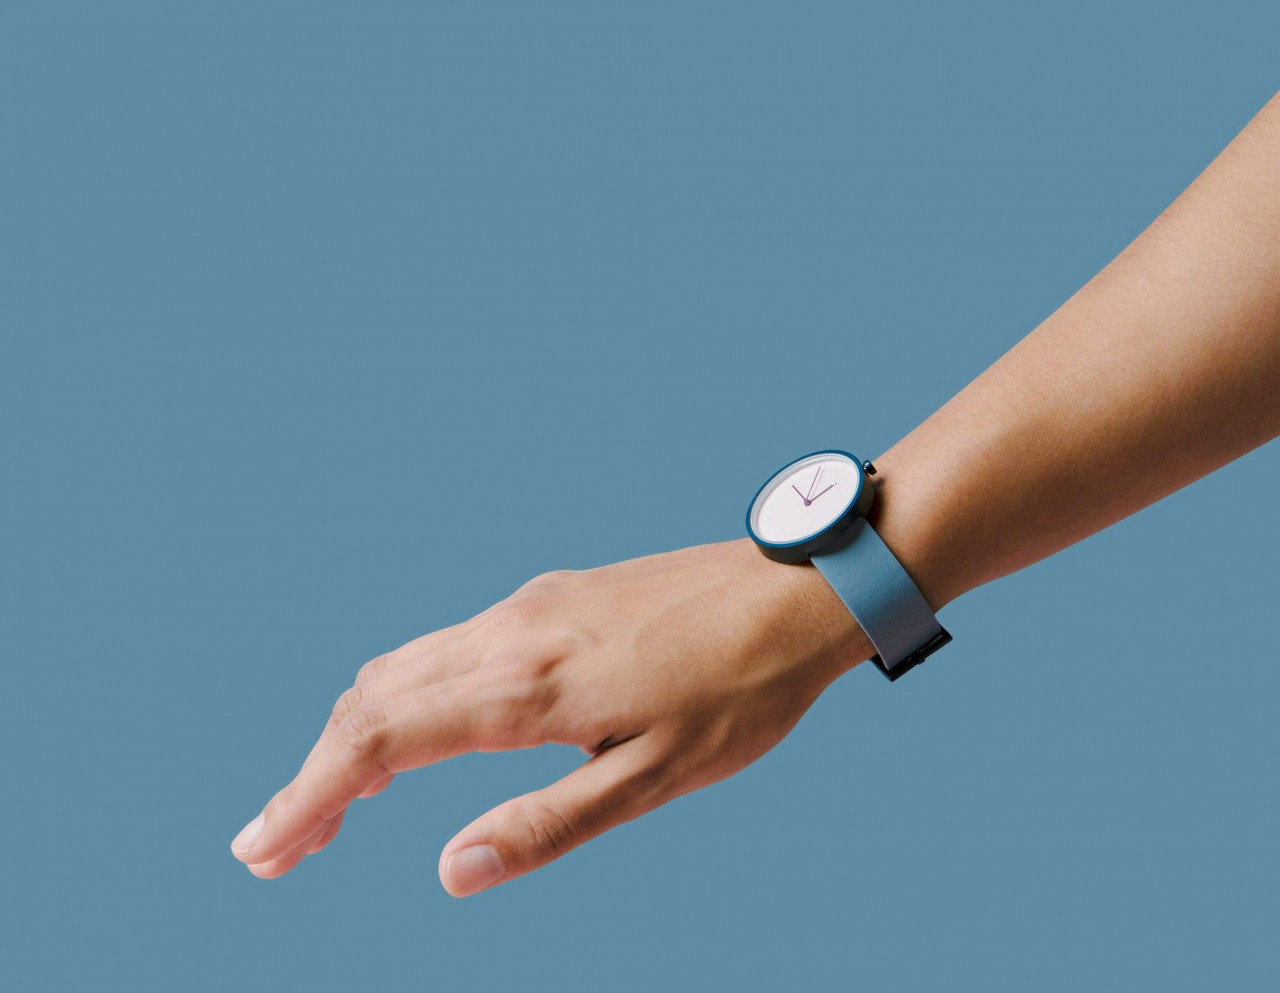 The Best of Minimal, Modern Timepieces to Watch Out for in 2020